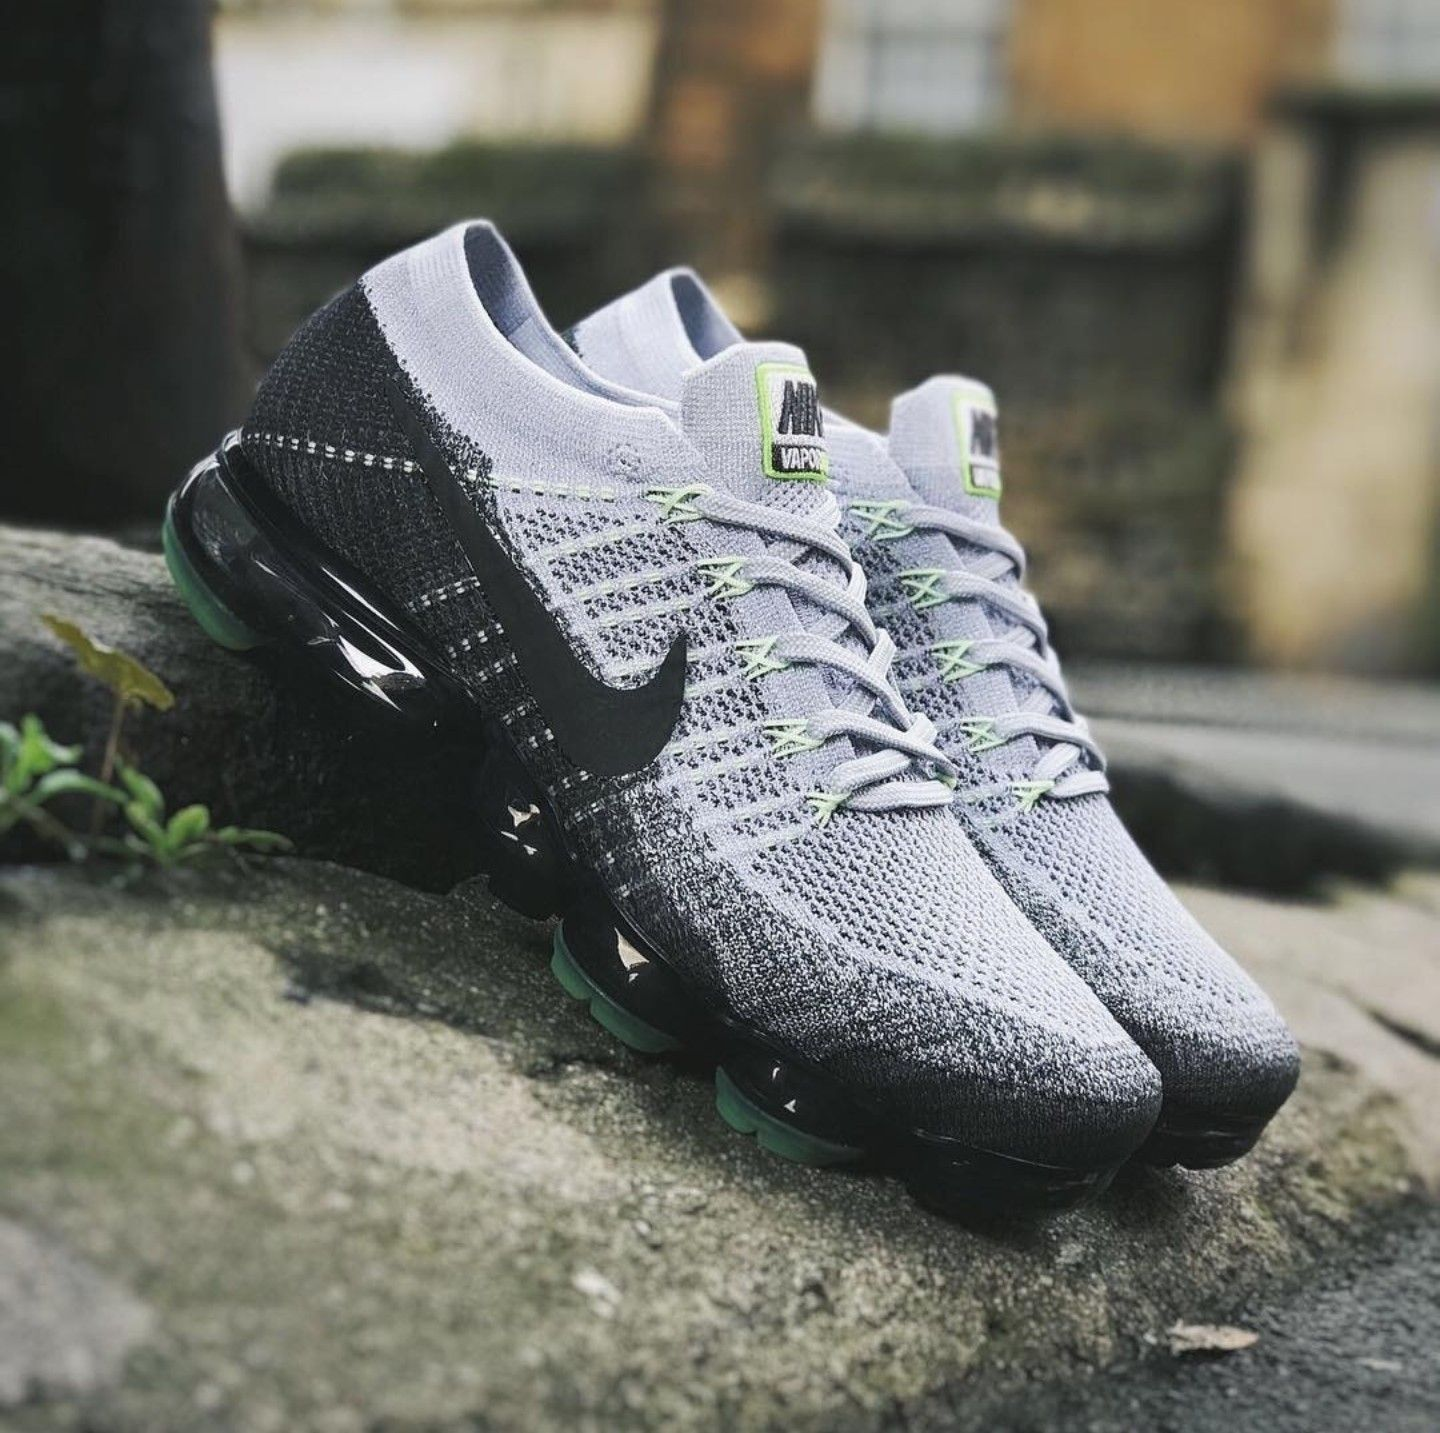 new product 09d6c 1dca8 Nike Air VaporMax Flyknit. Pure Platinum White Dark Grey Anthracite